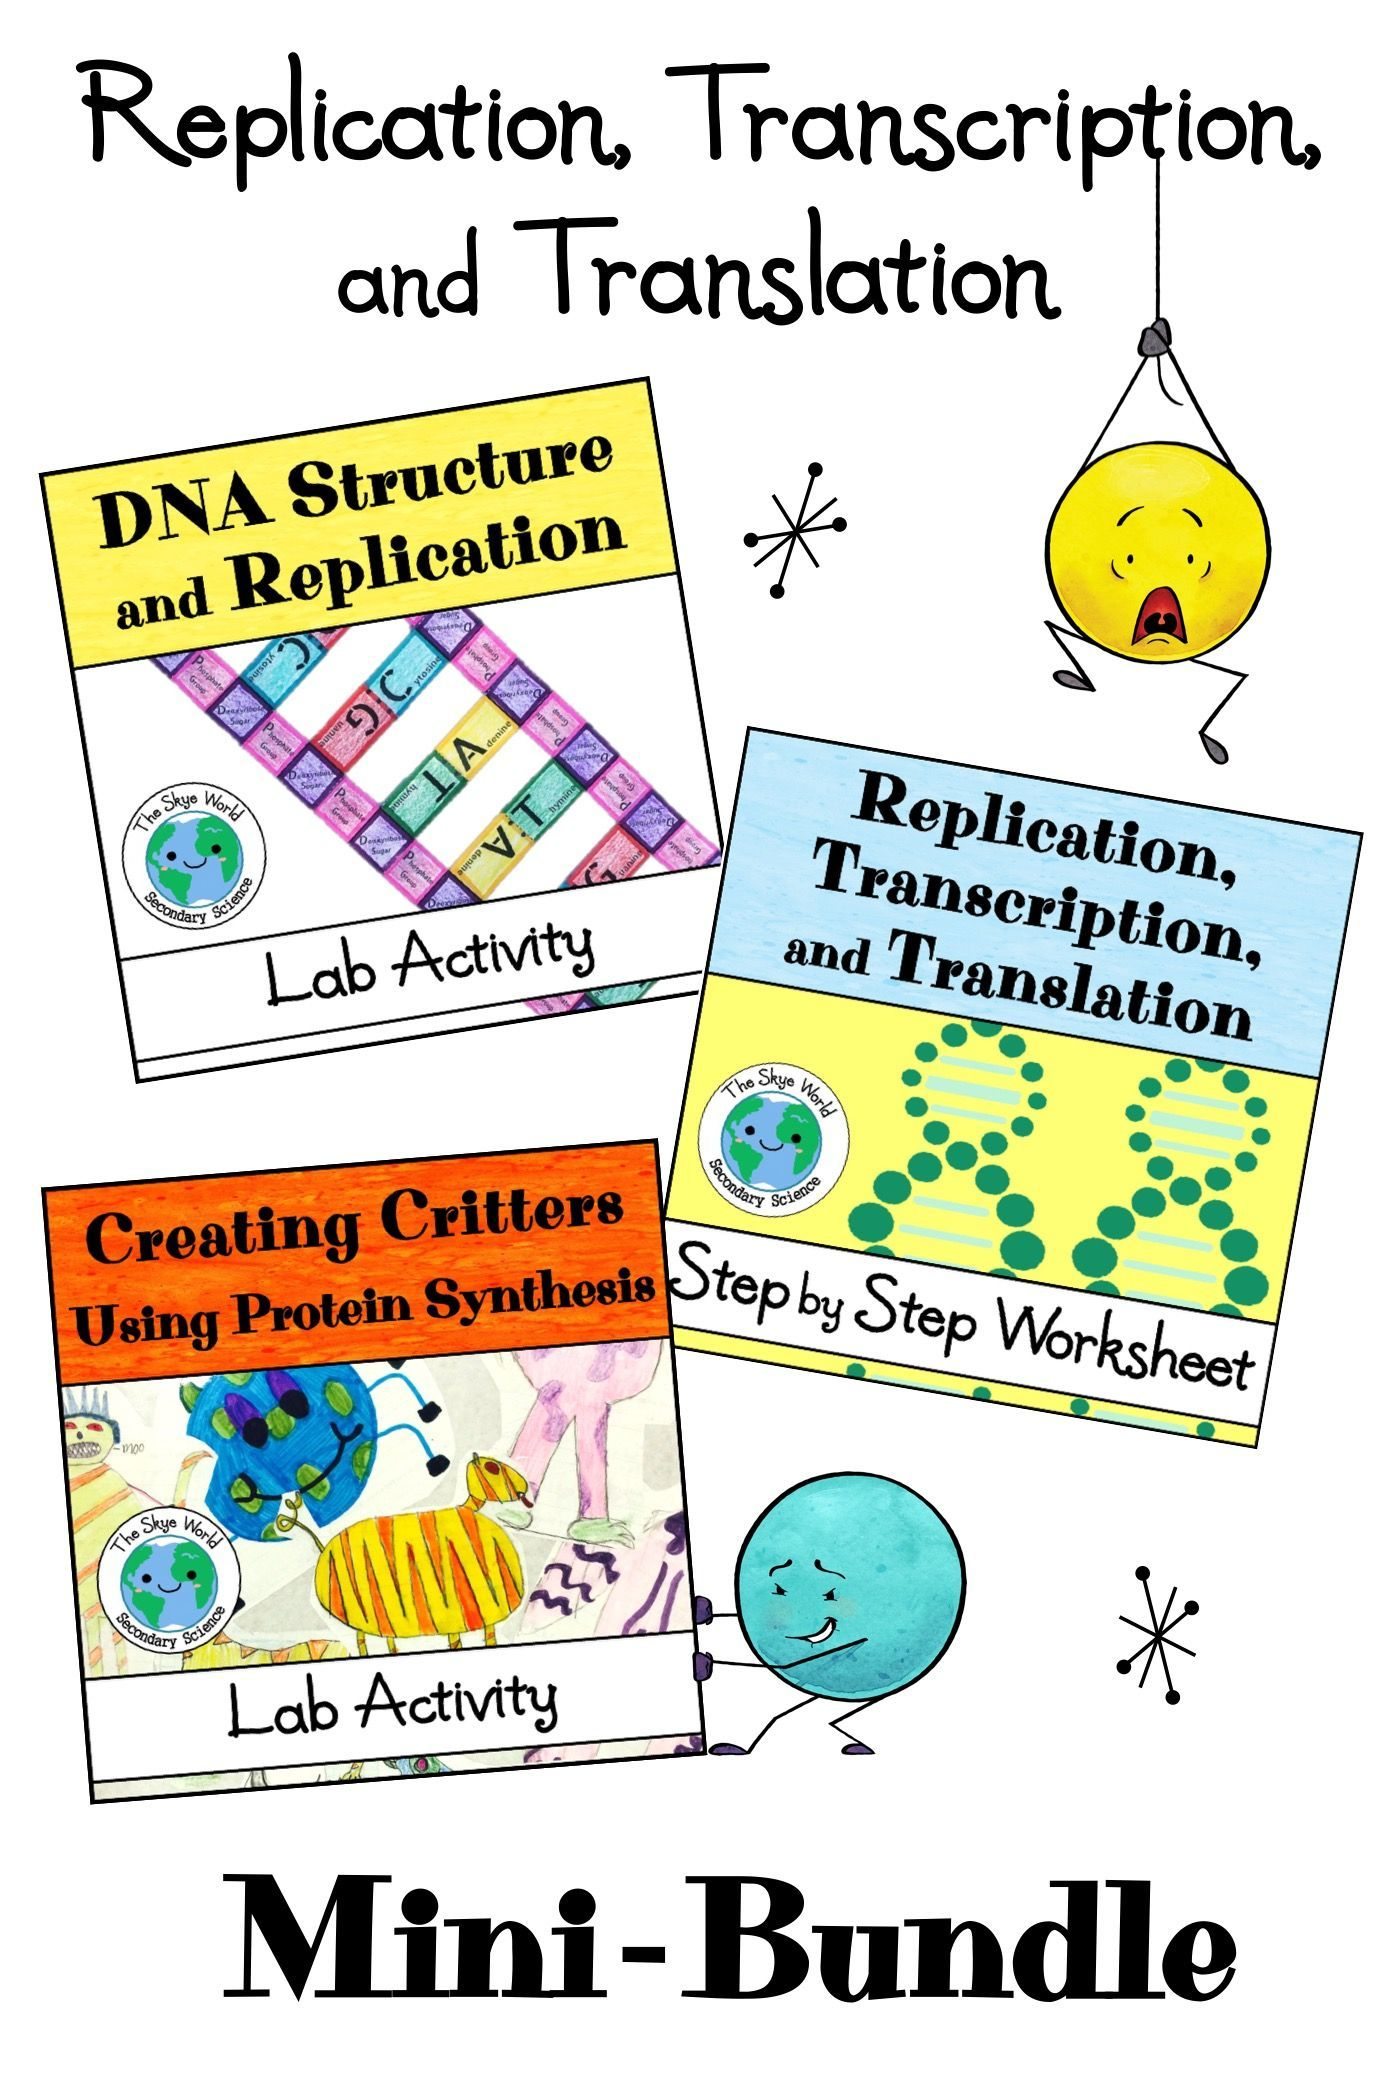 Dna Replication Transcription And Translation Mini Bundle Of Activities Transcription And Translation Transcription Free Science Worksheets